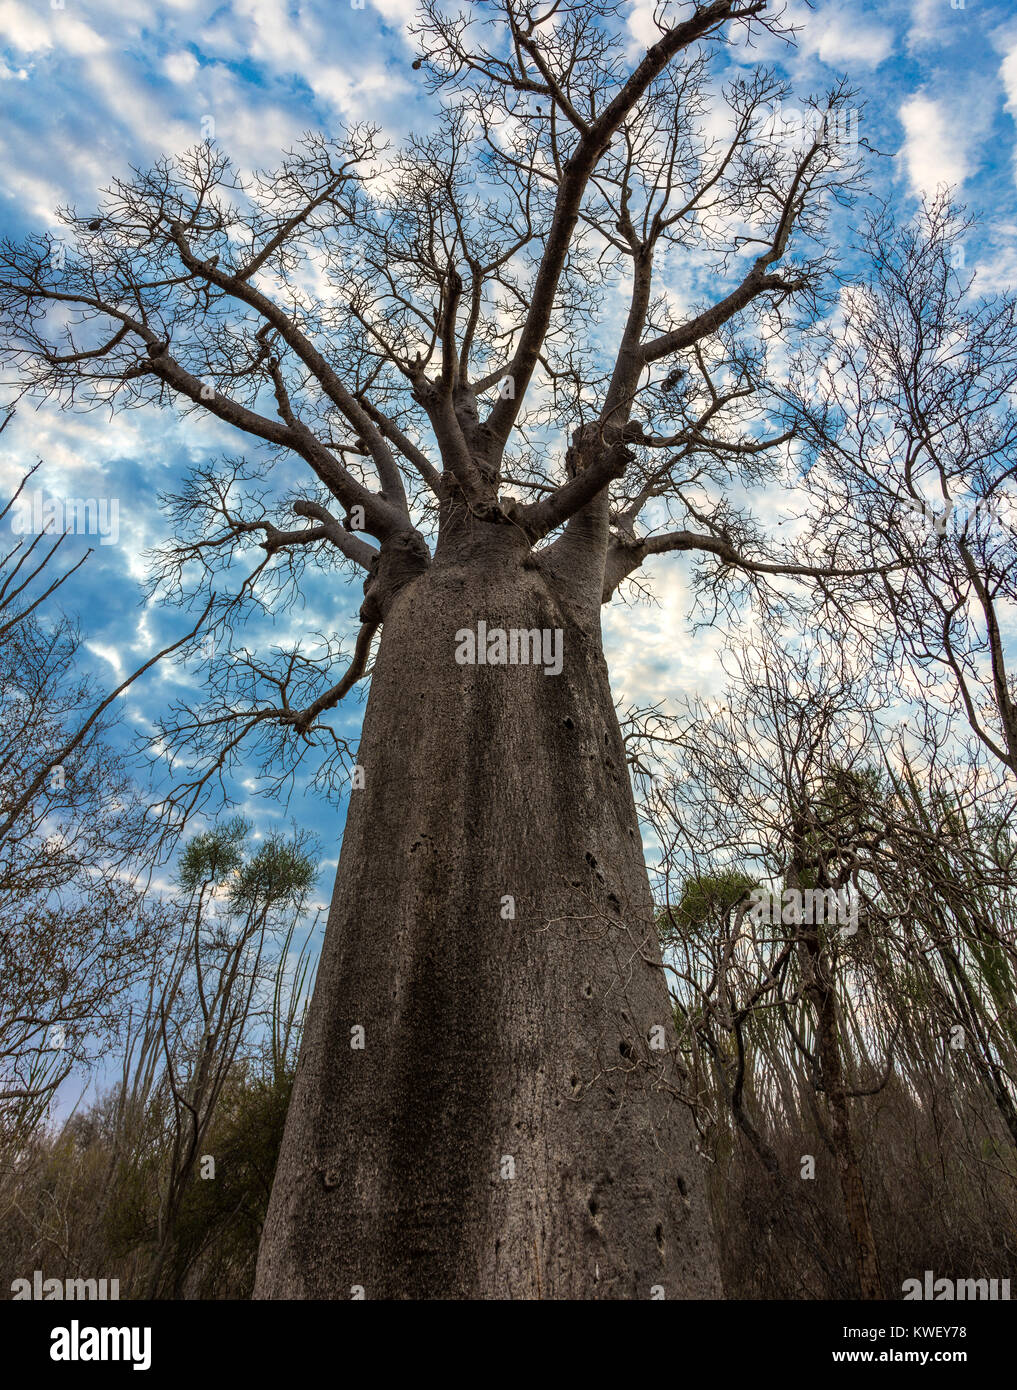 A Giant Baobab (Adansonia za) tree against cloudy sky in the Spiny Forest of Berenty Private Reserve. Southwest - Stock Image